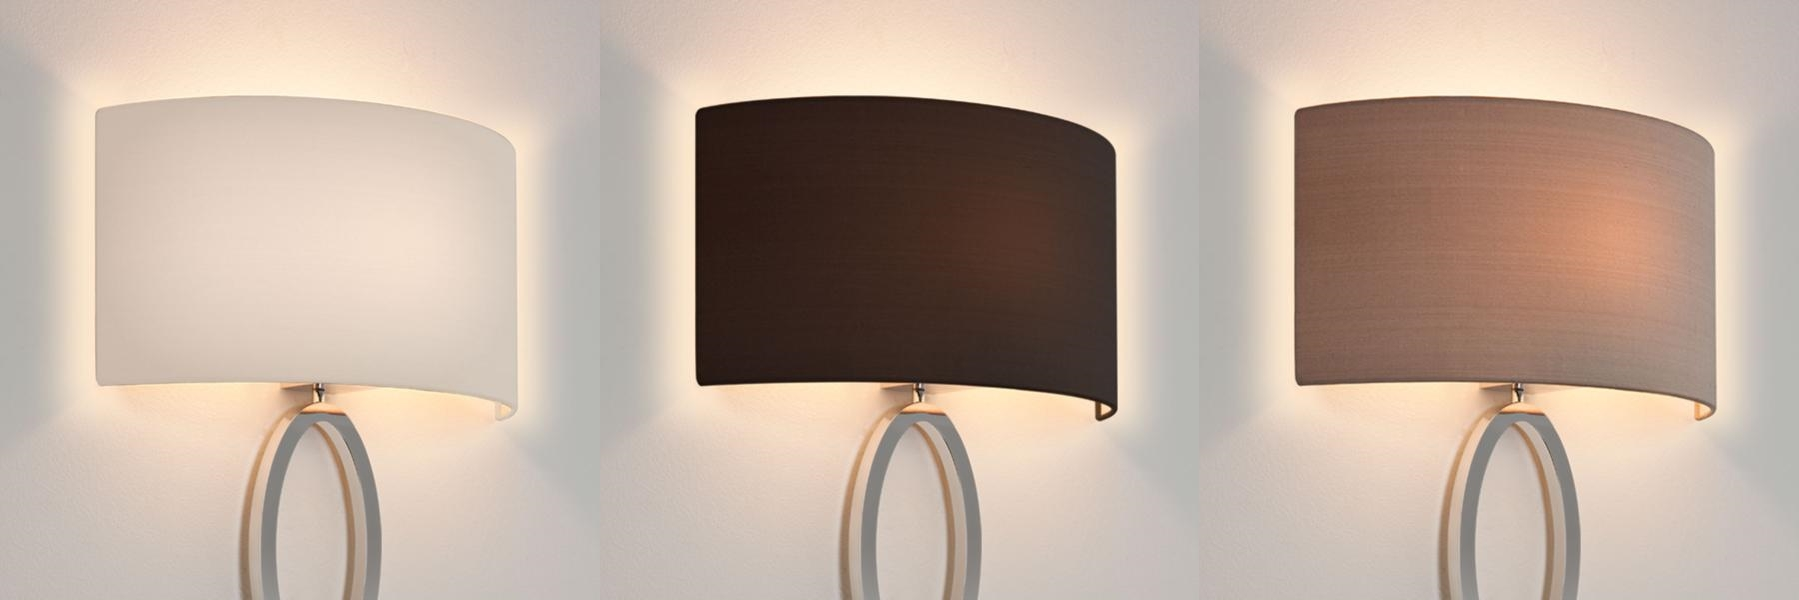 Wall Lights Lampshades : Lamp shades wall lights - your great choice for the ambience Warisan Lighting